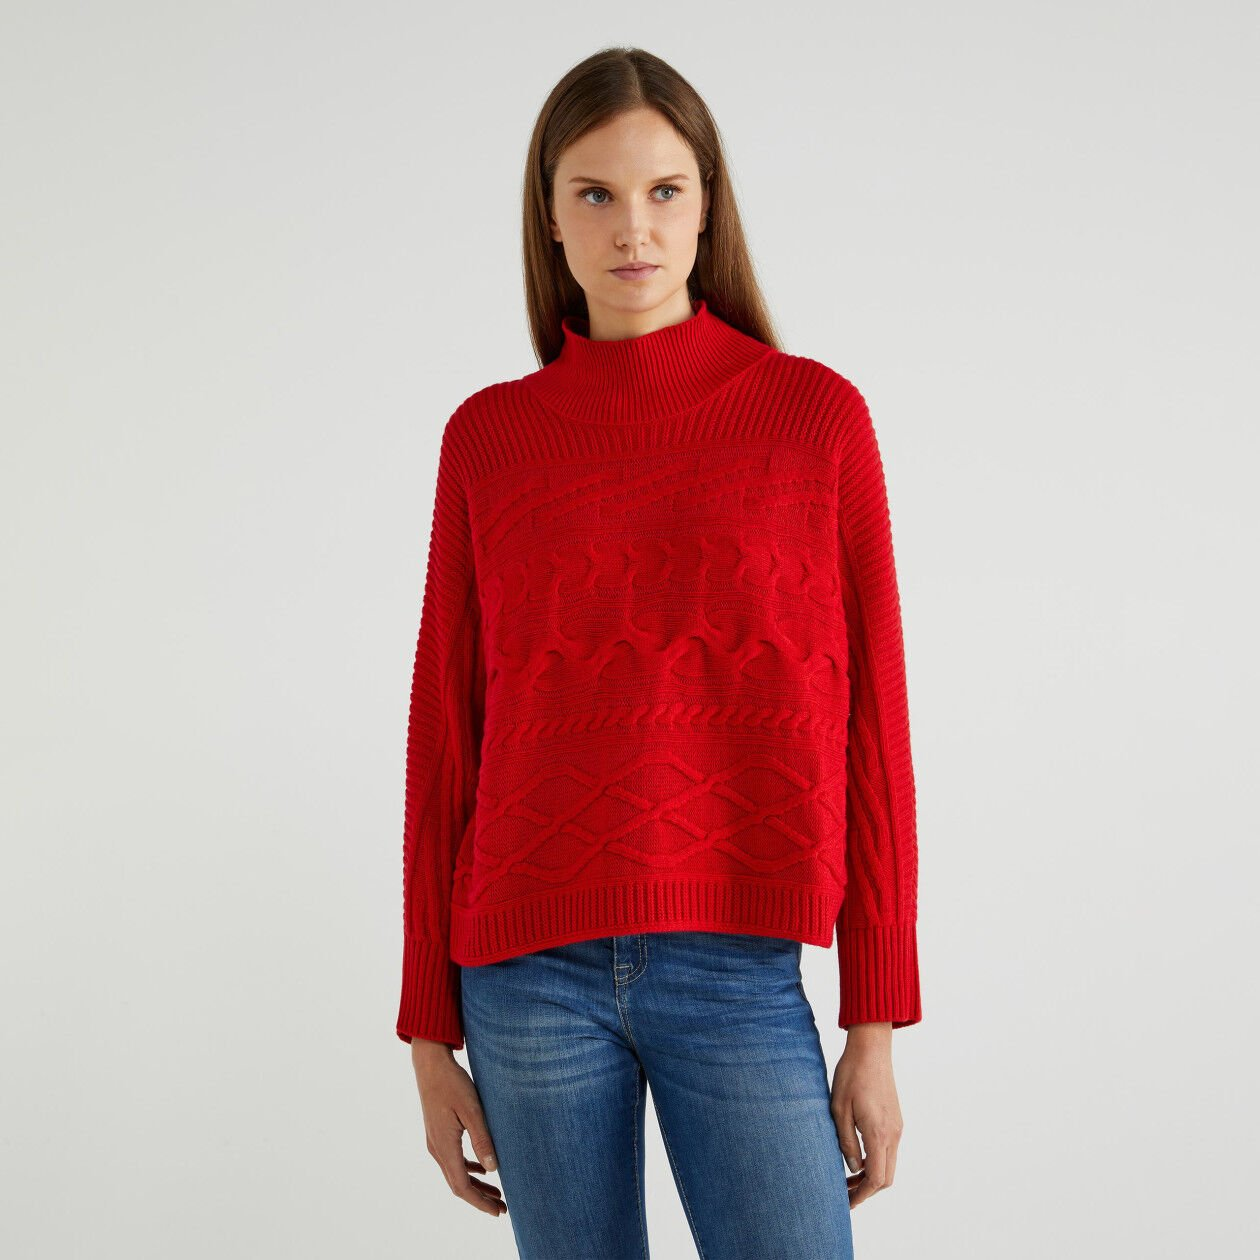 Turtleneck sweater in wool and cashmere